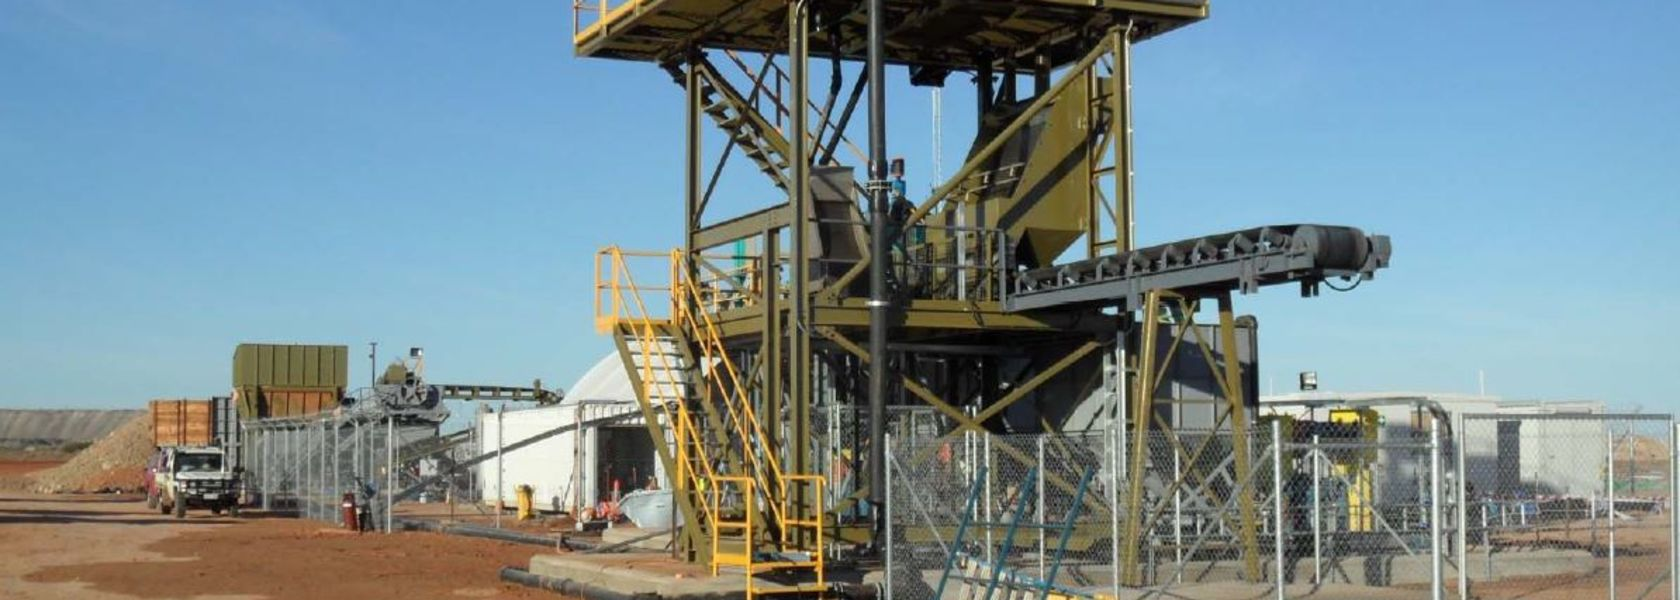 Portia plant treats first gold ore